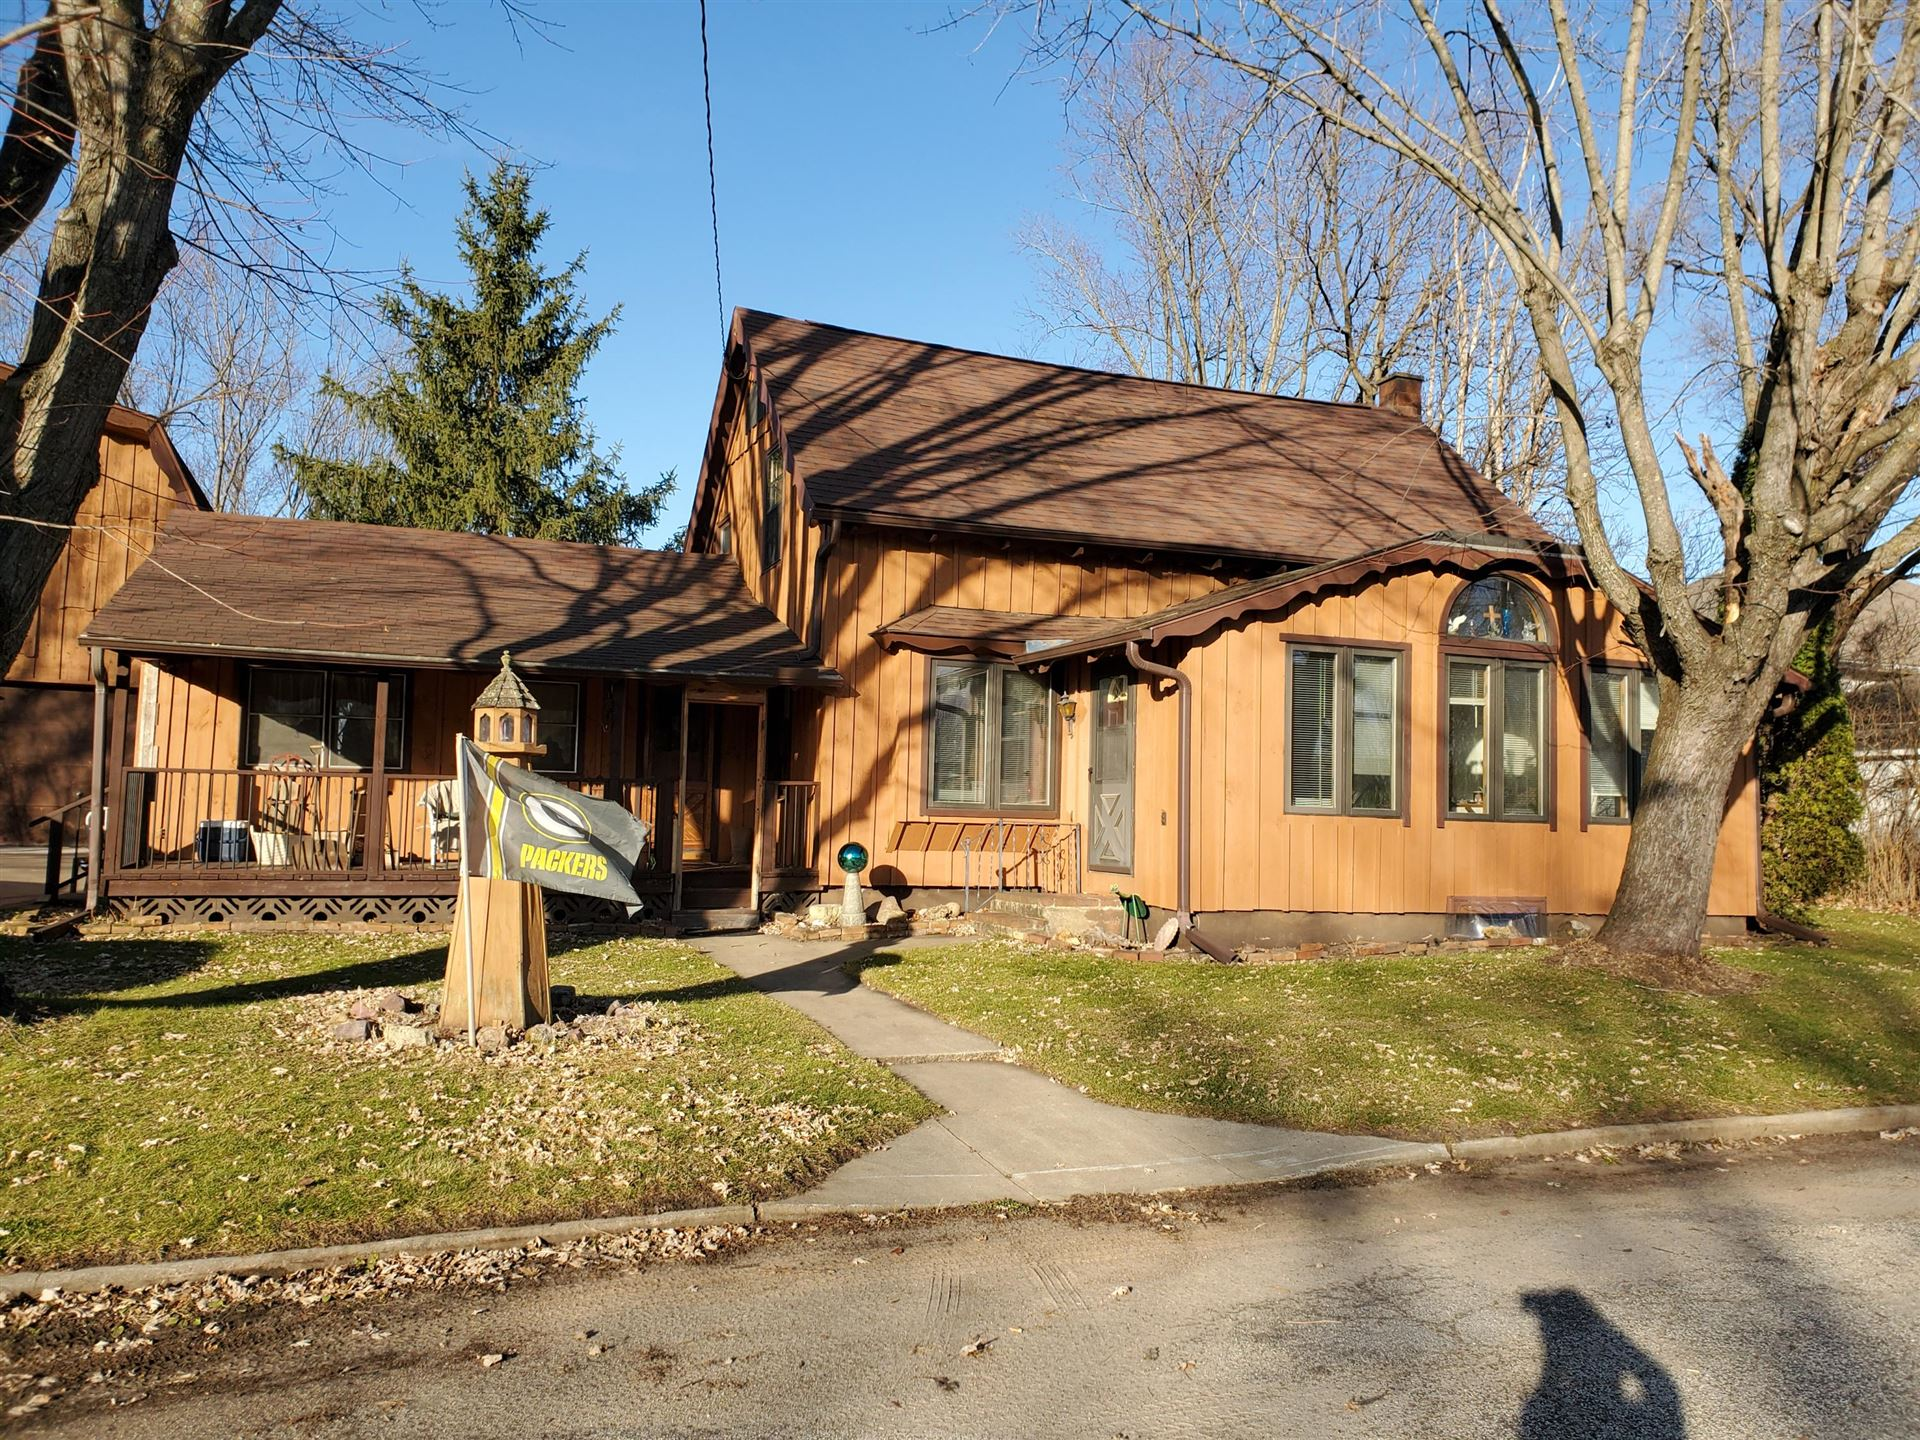 10662 Gateway Ave, Angelo, WI 54656 - MLS#: 1719721